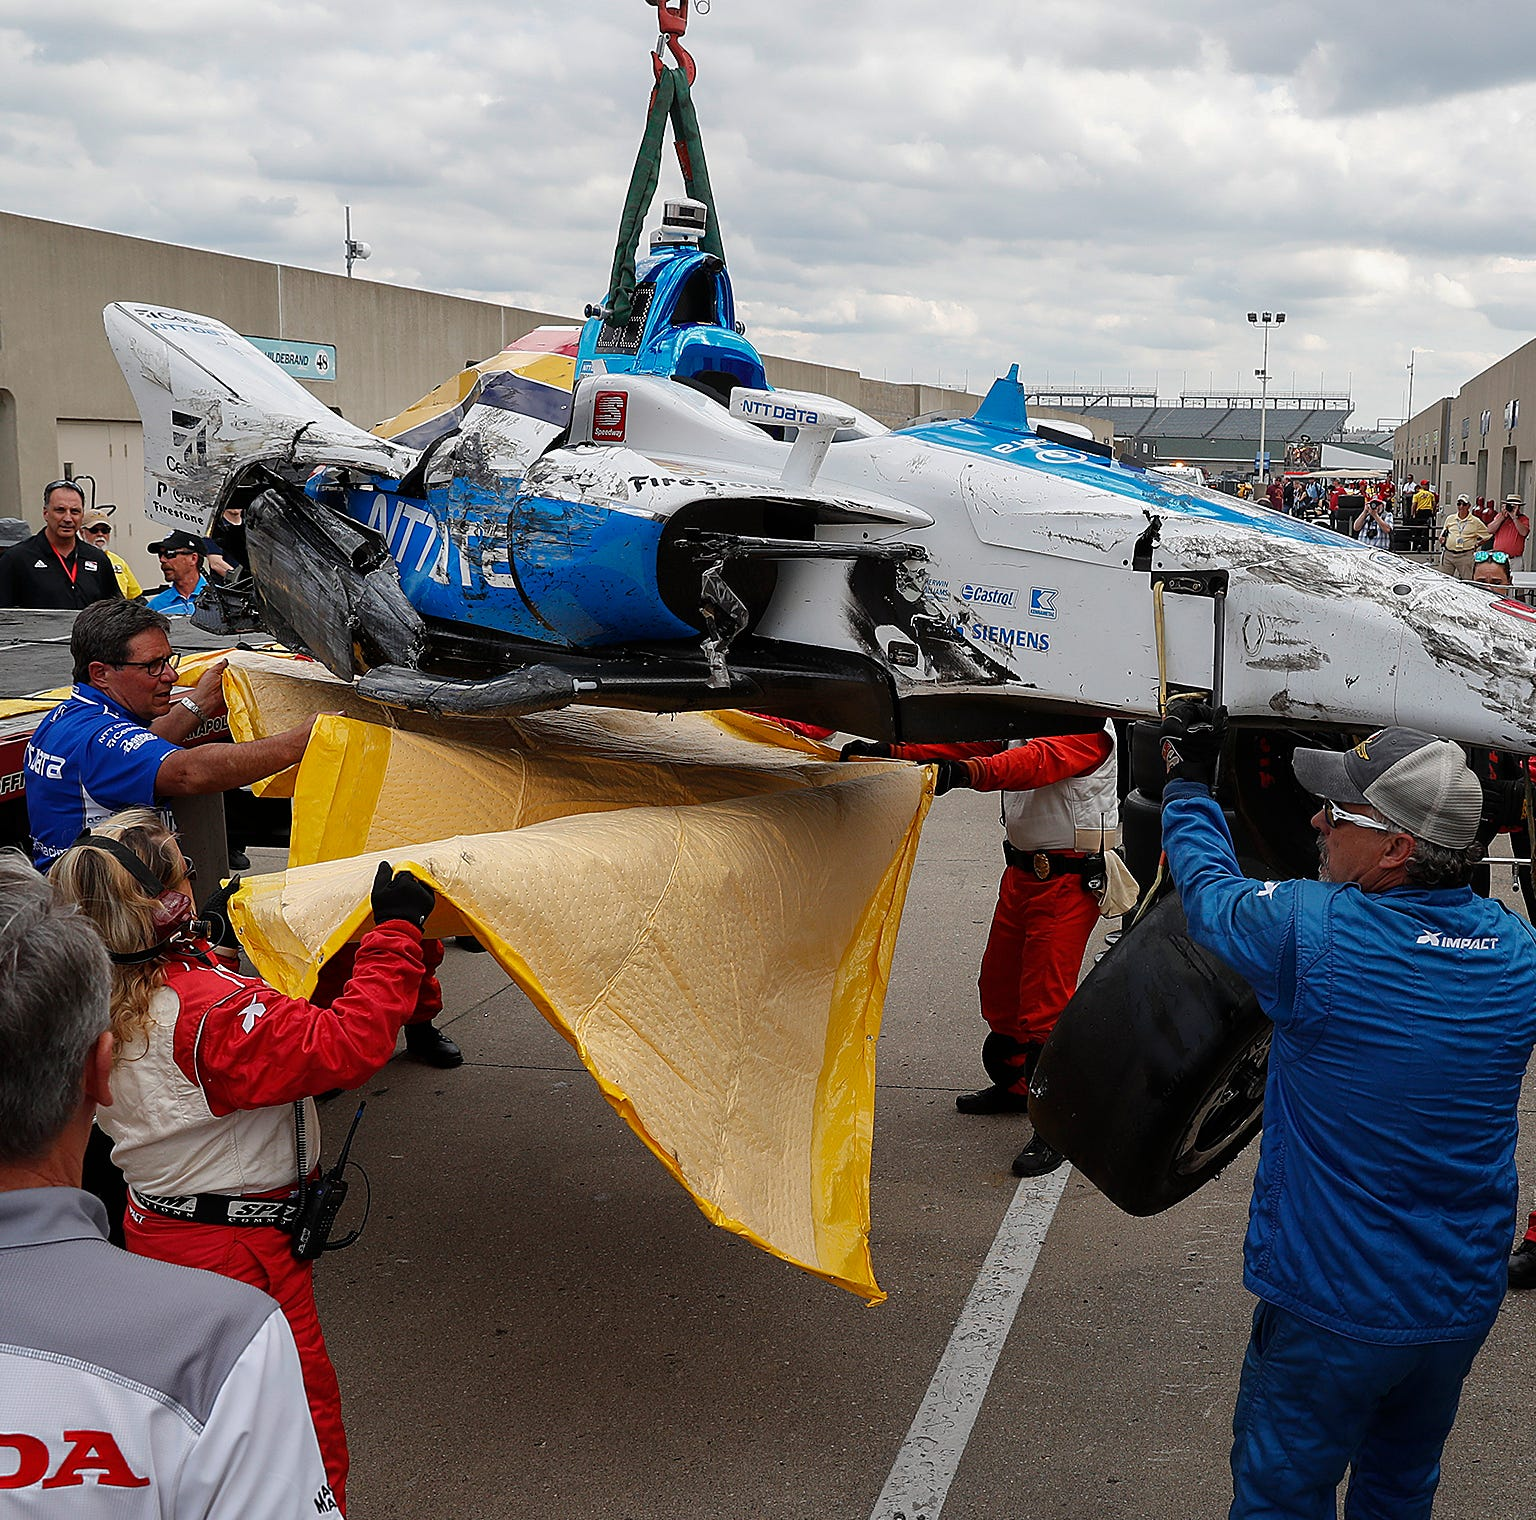 Indy 500 2019: Felix Rosenqvist is second driver to crash in practice